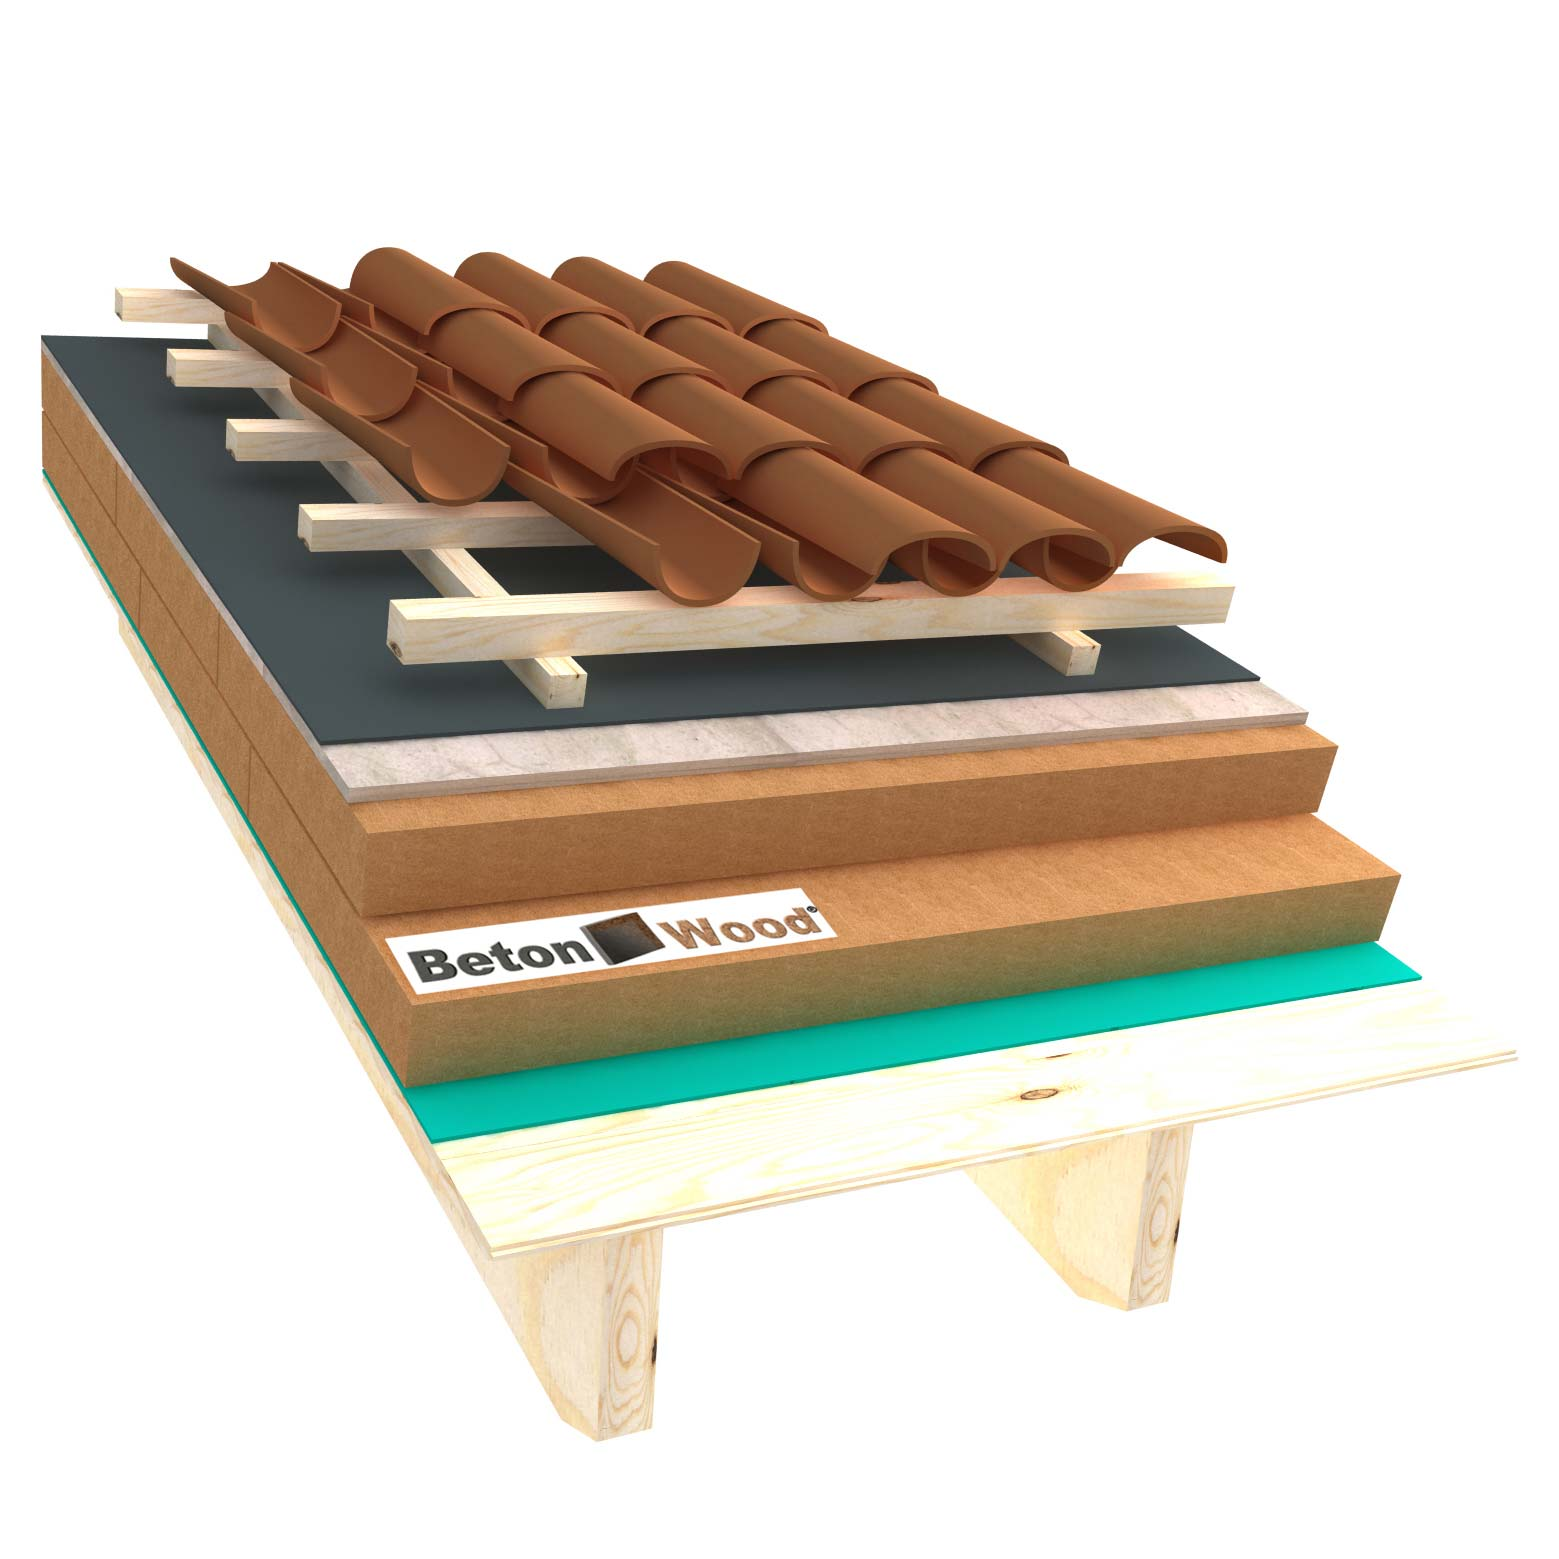 Ventilated roof with fiber wood Special and cement bonded particle boards on matchboarding